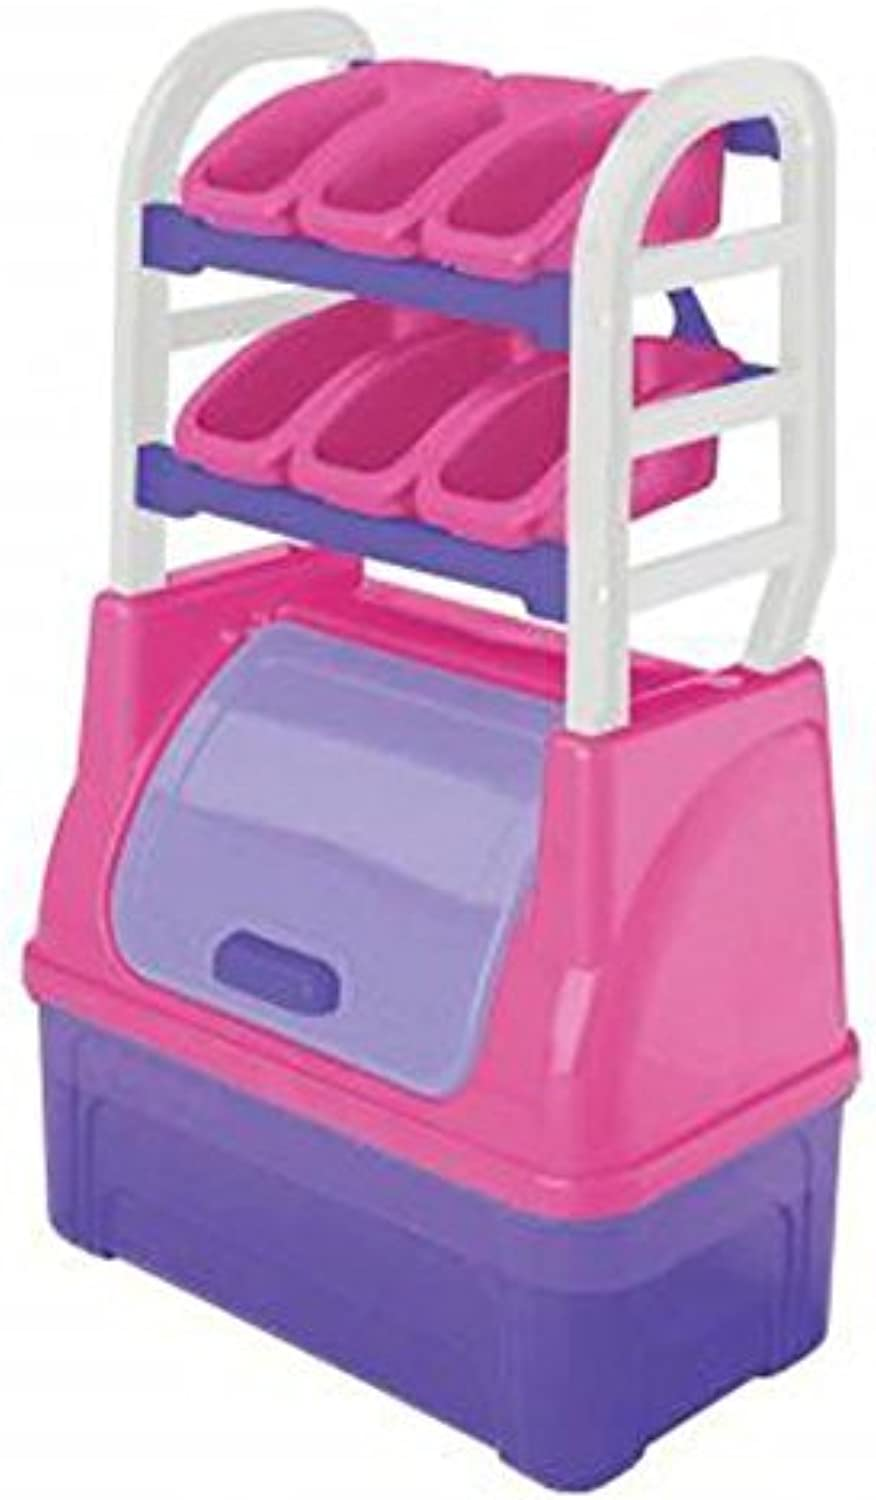 American Plastic Toys Girl's Toy Organizer Playset by American Plastic Toys